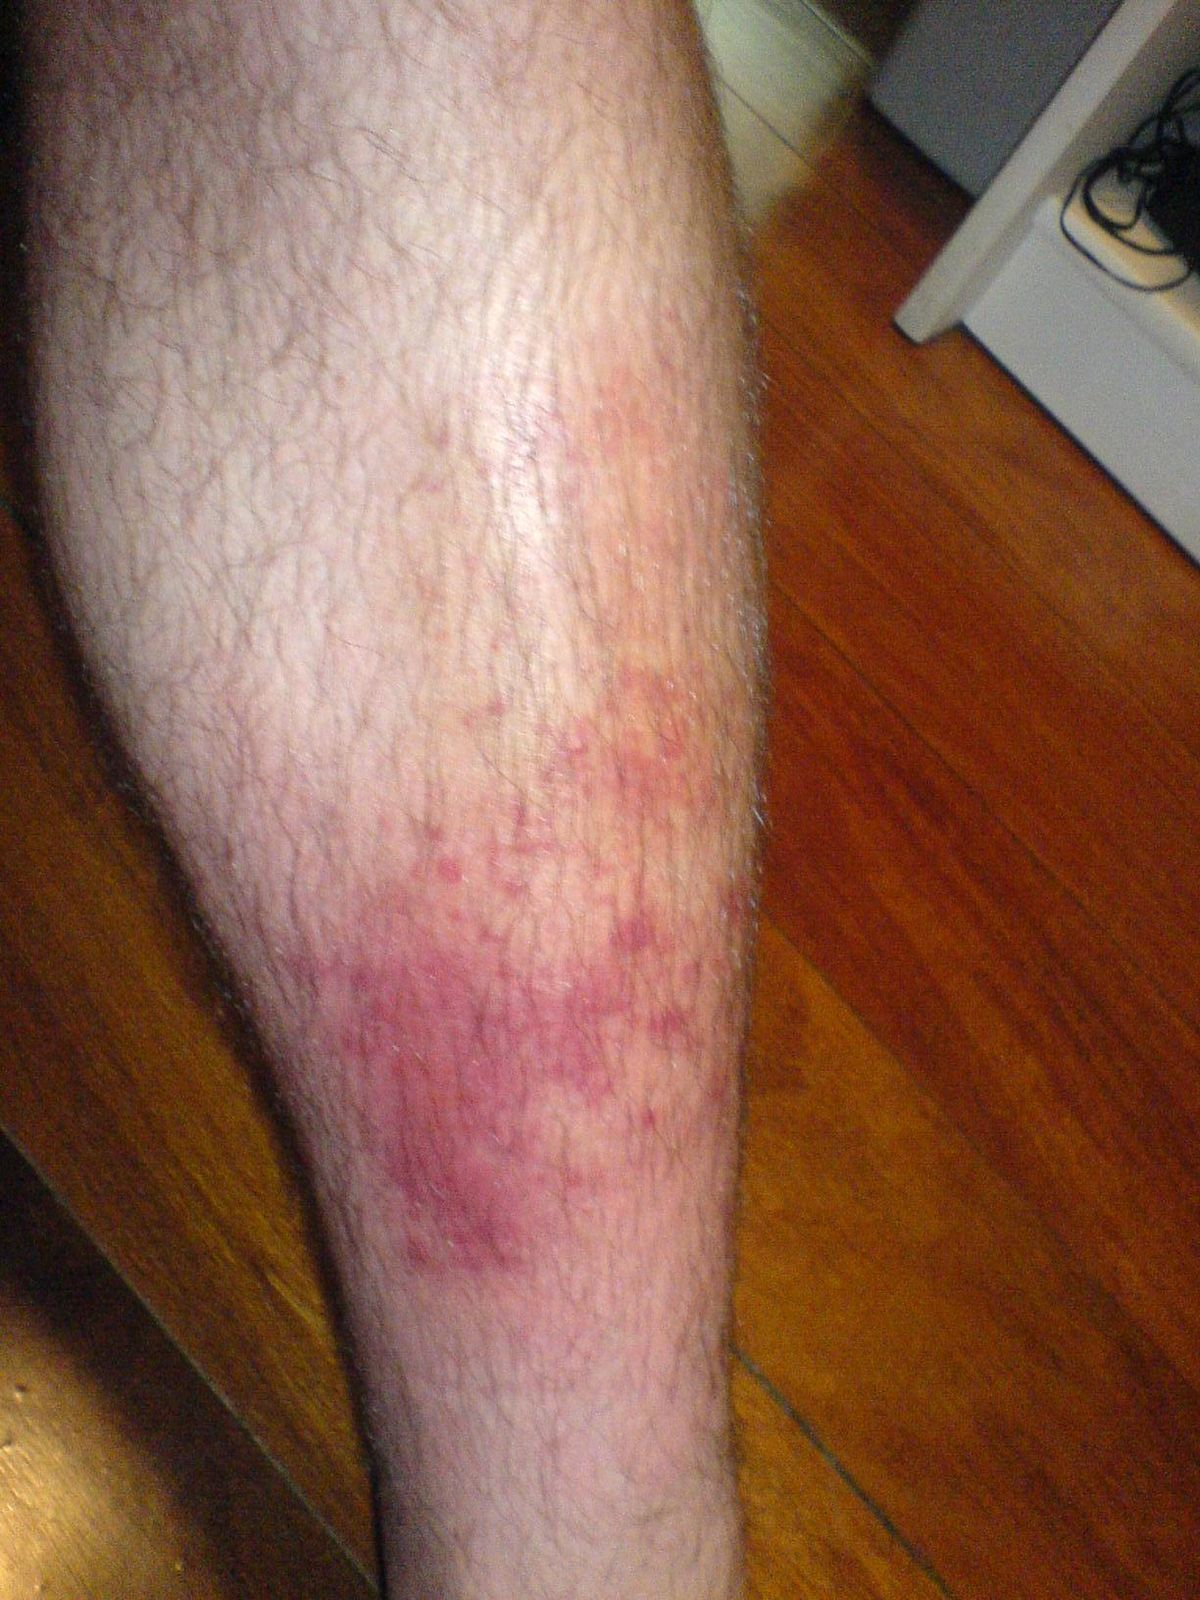 Cellulitis Wikipedia